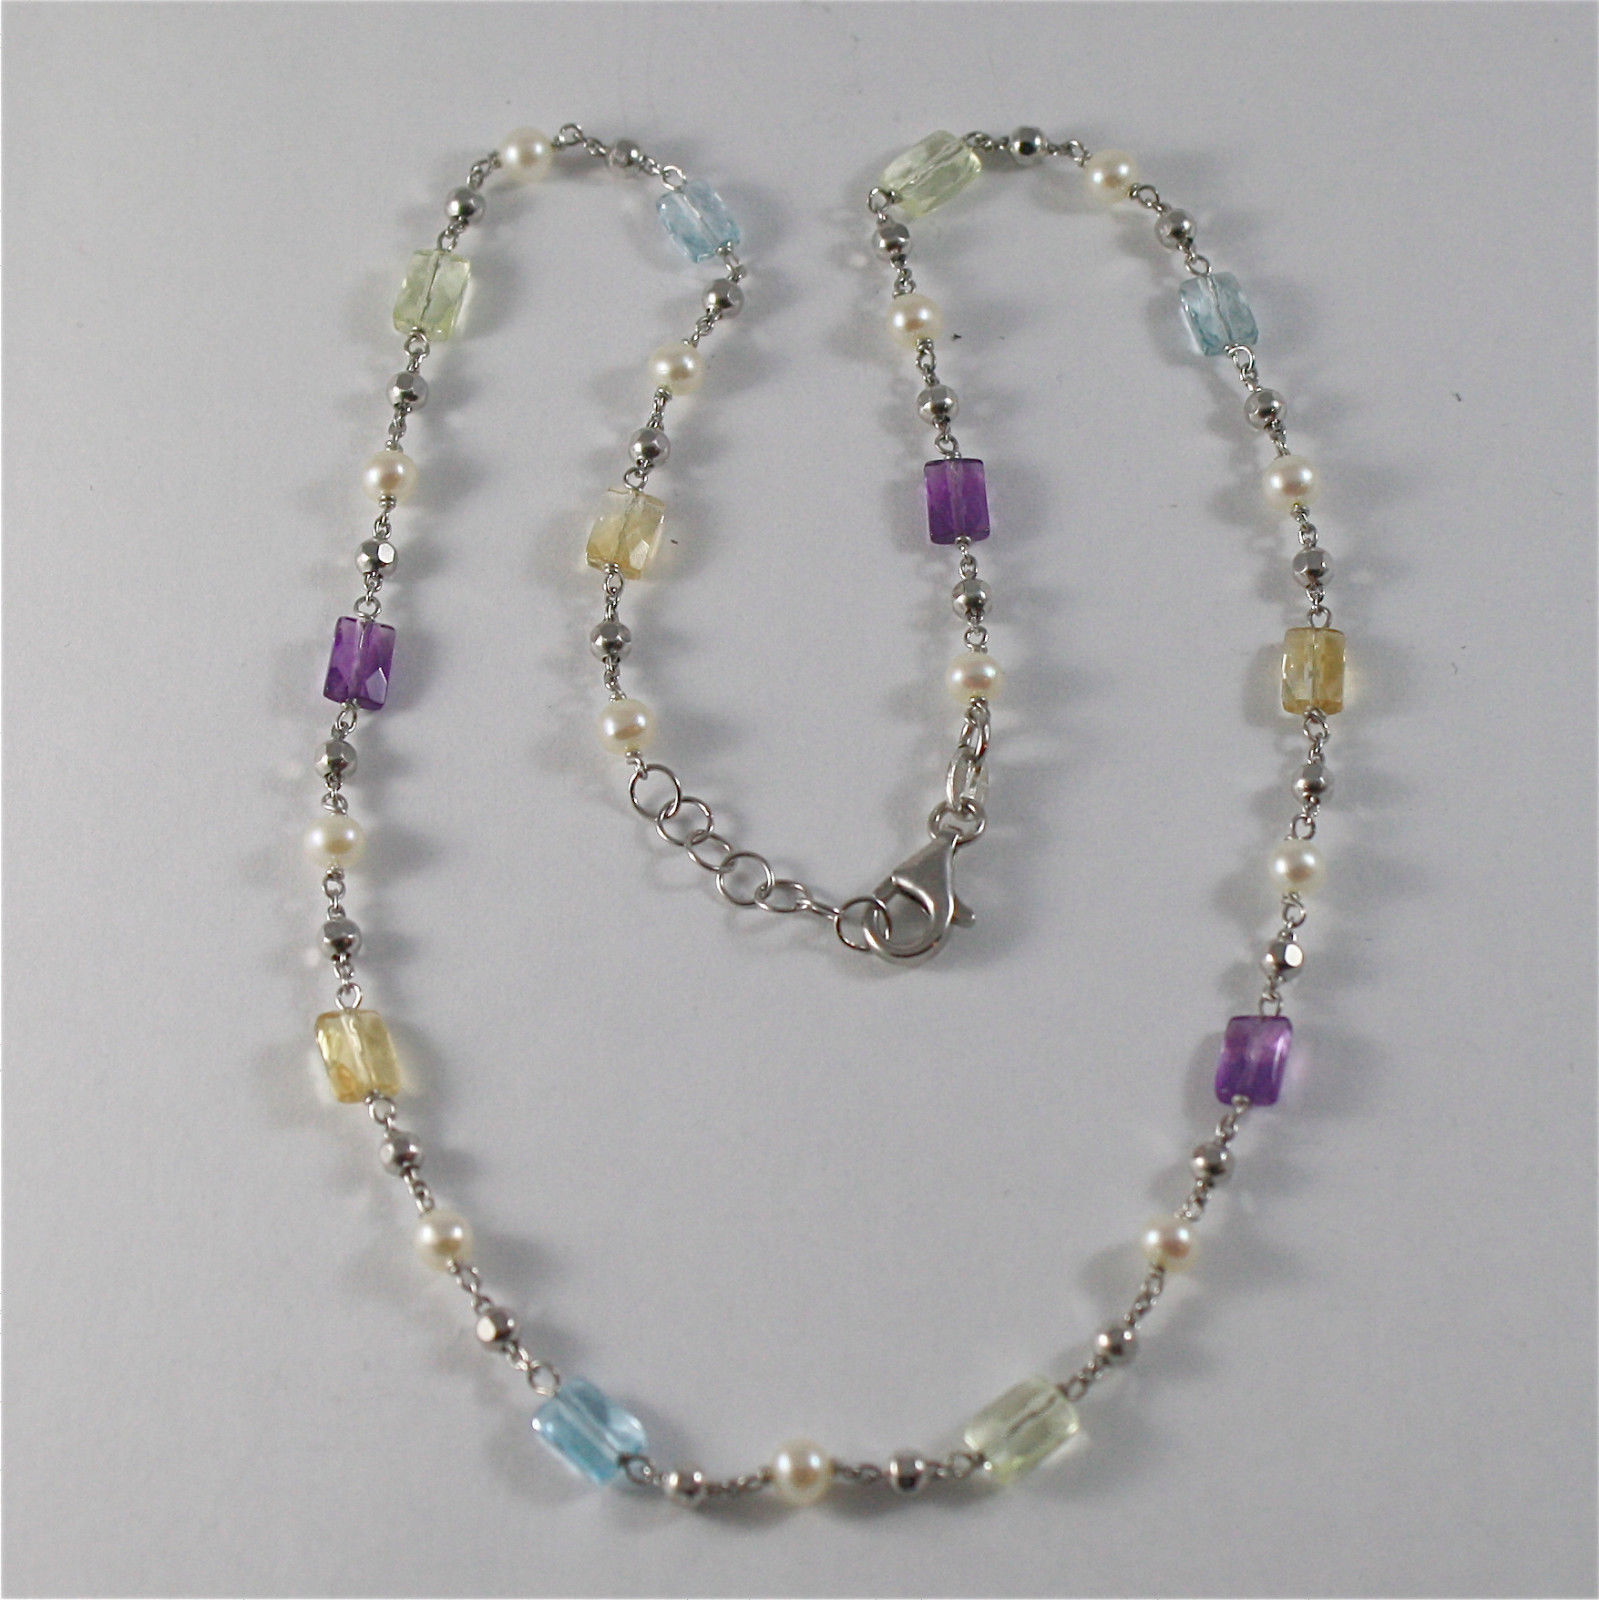 925 SILVER NECKLACE WITH WHITE FW PEARLS AND MULTIFACETED STONE AMETHYST, TOPAZ